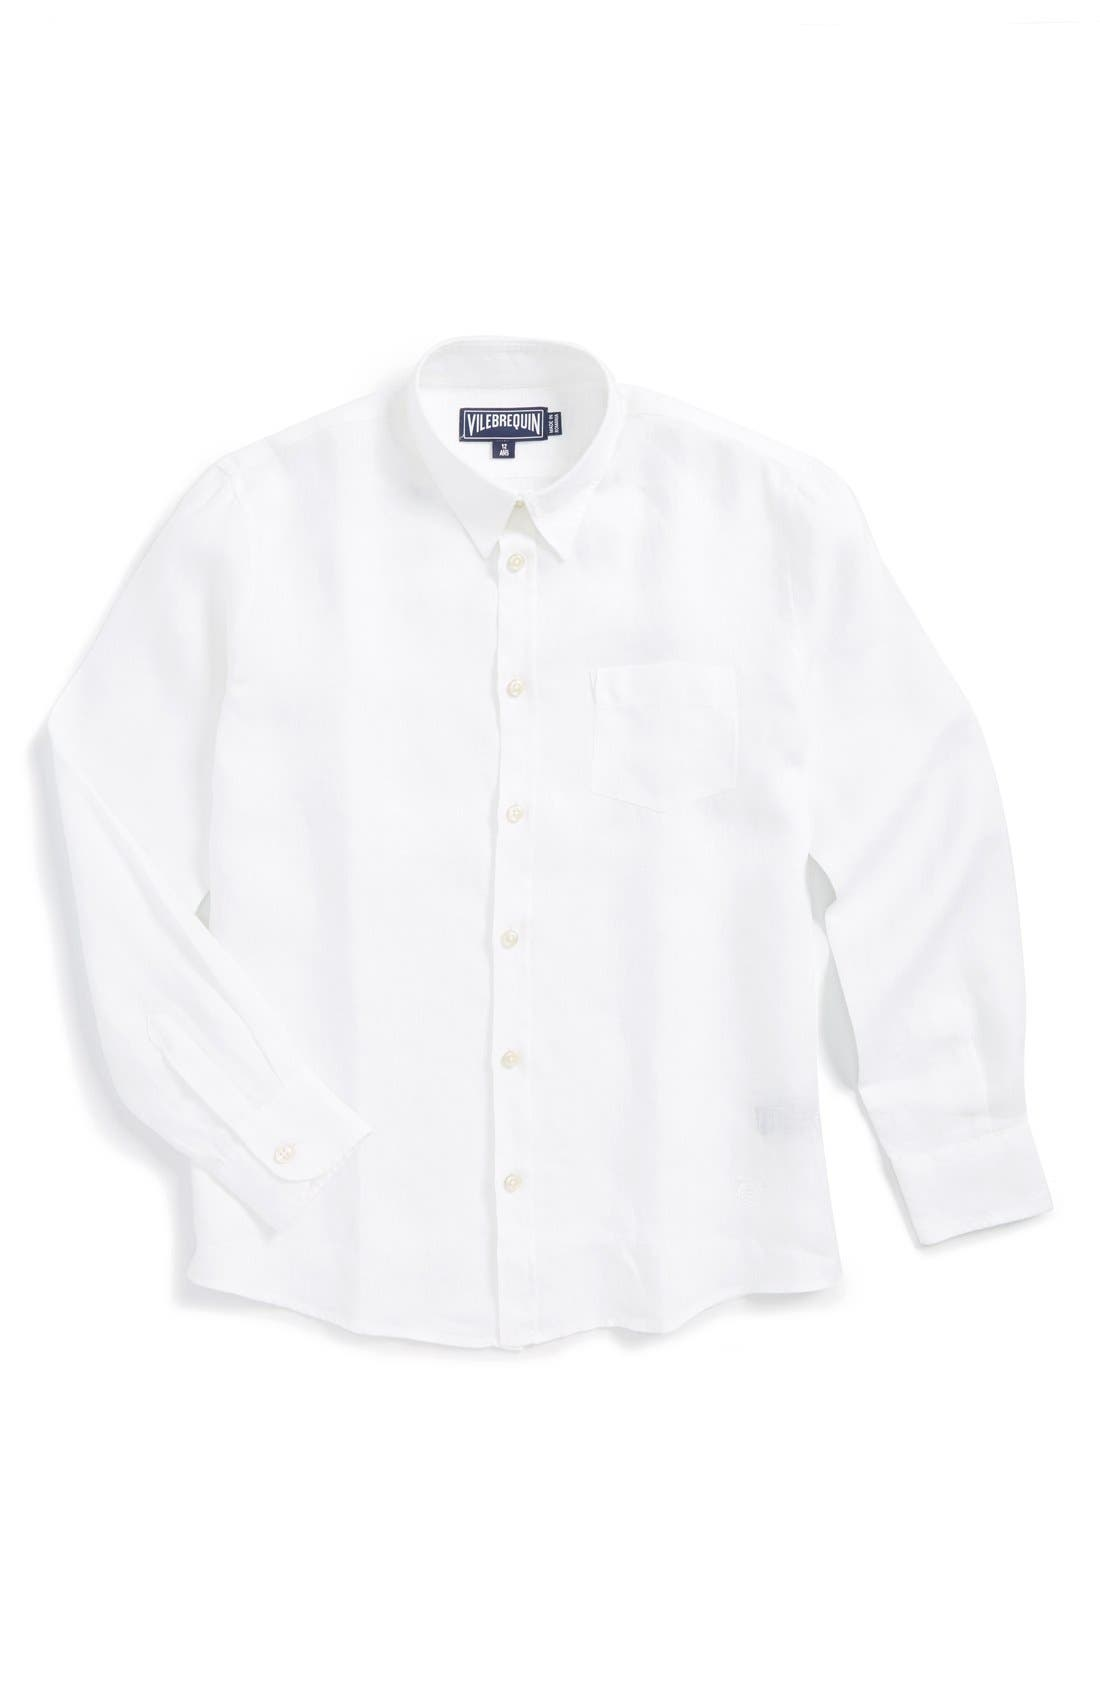 VILEBREQUIN Linen Shirt, Main, color, 100